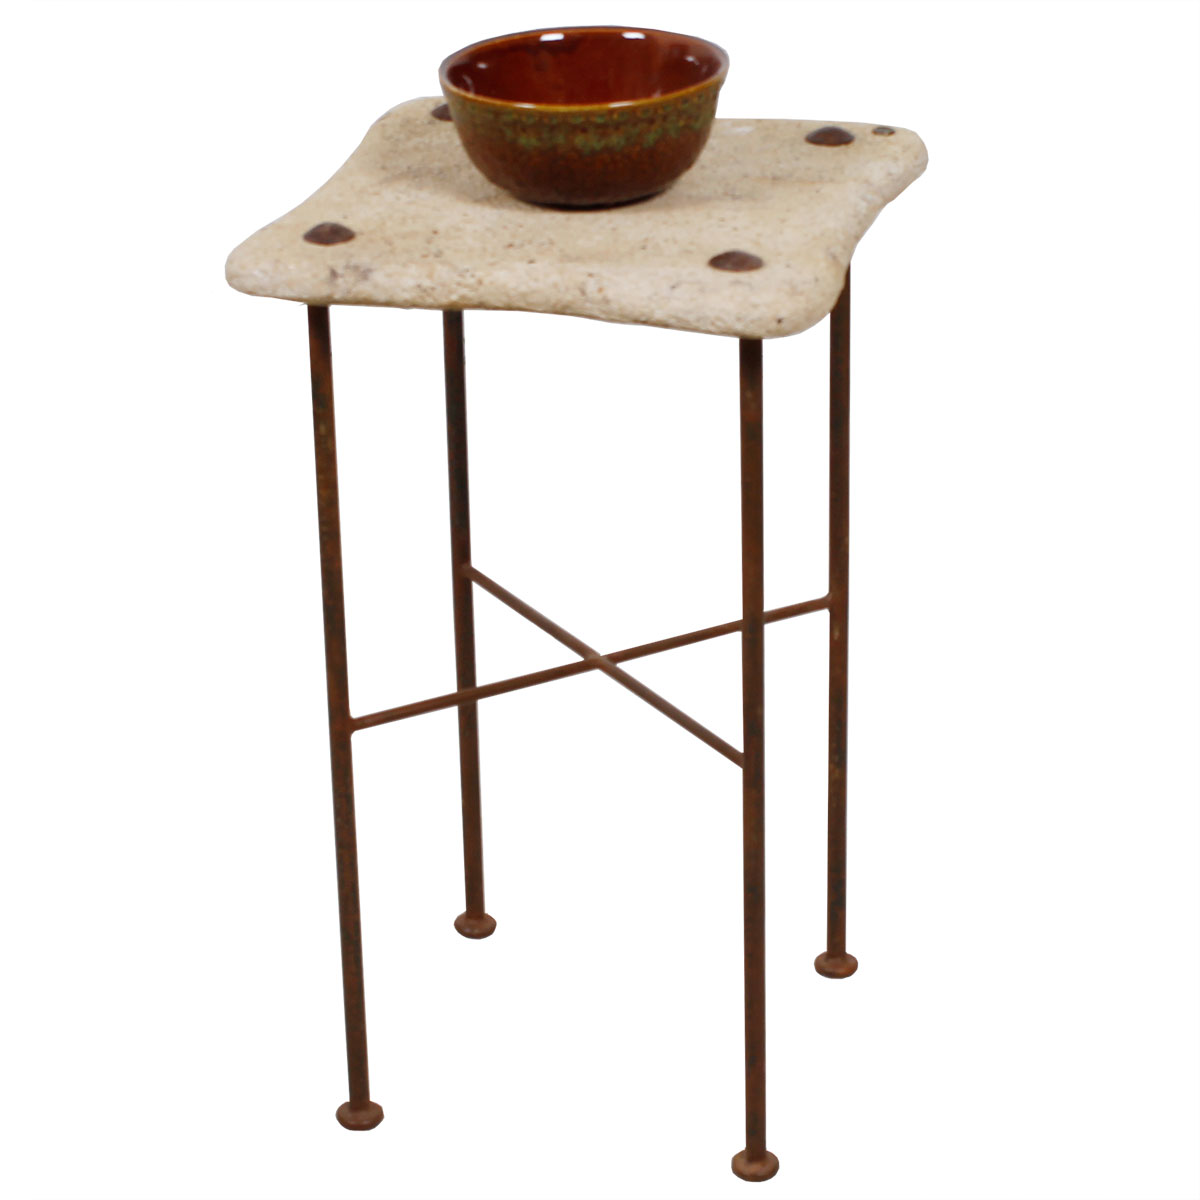 modern mobler tall accent pedestal table decorator zinc trestle danish furniture distressed wood tables shabby chic lamps dale tiffany sconce thin entryway target end and coffee